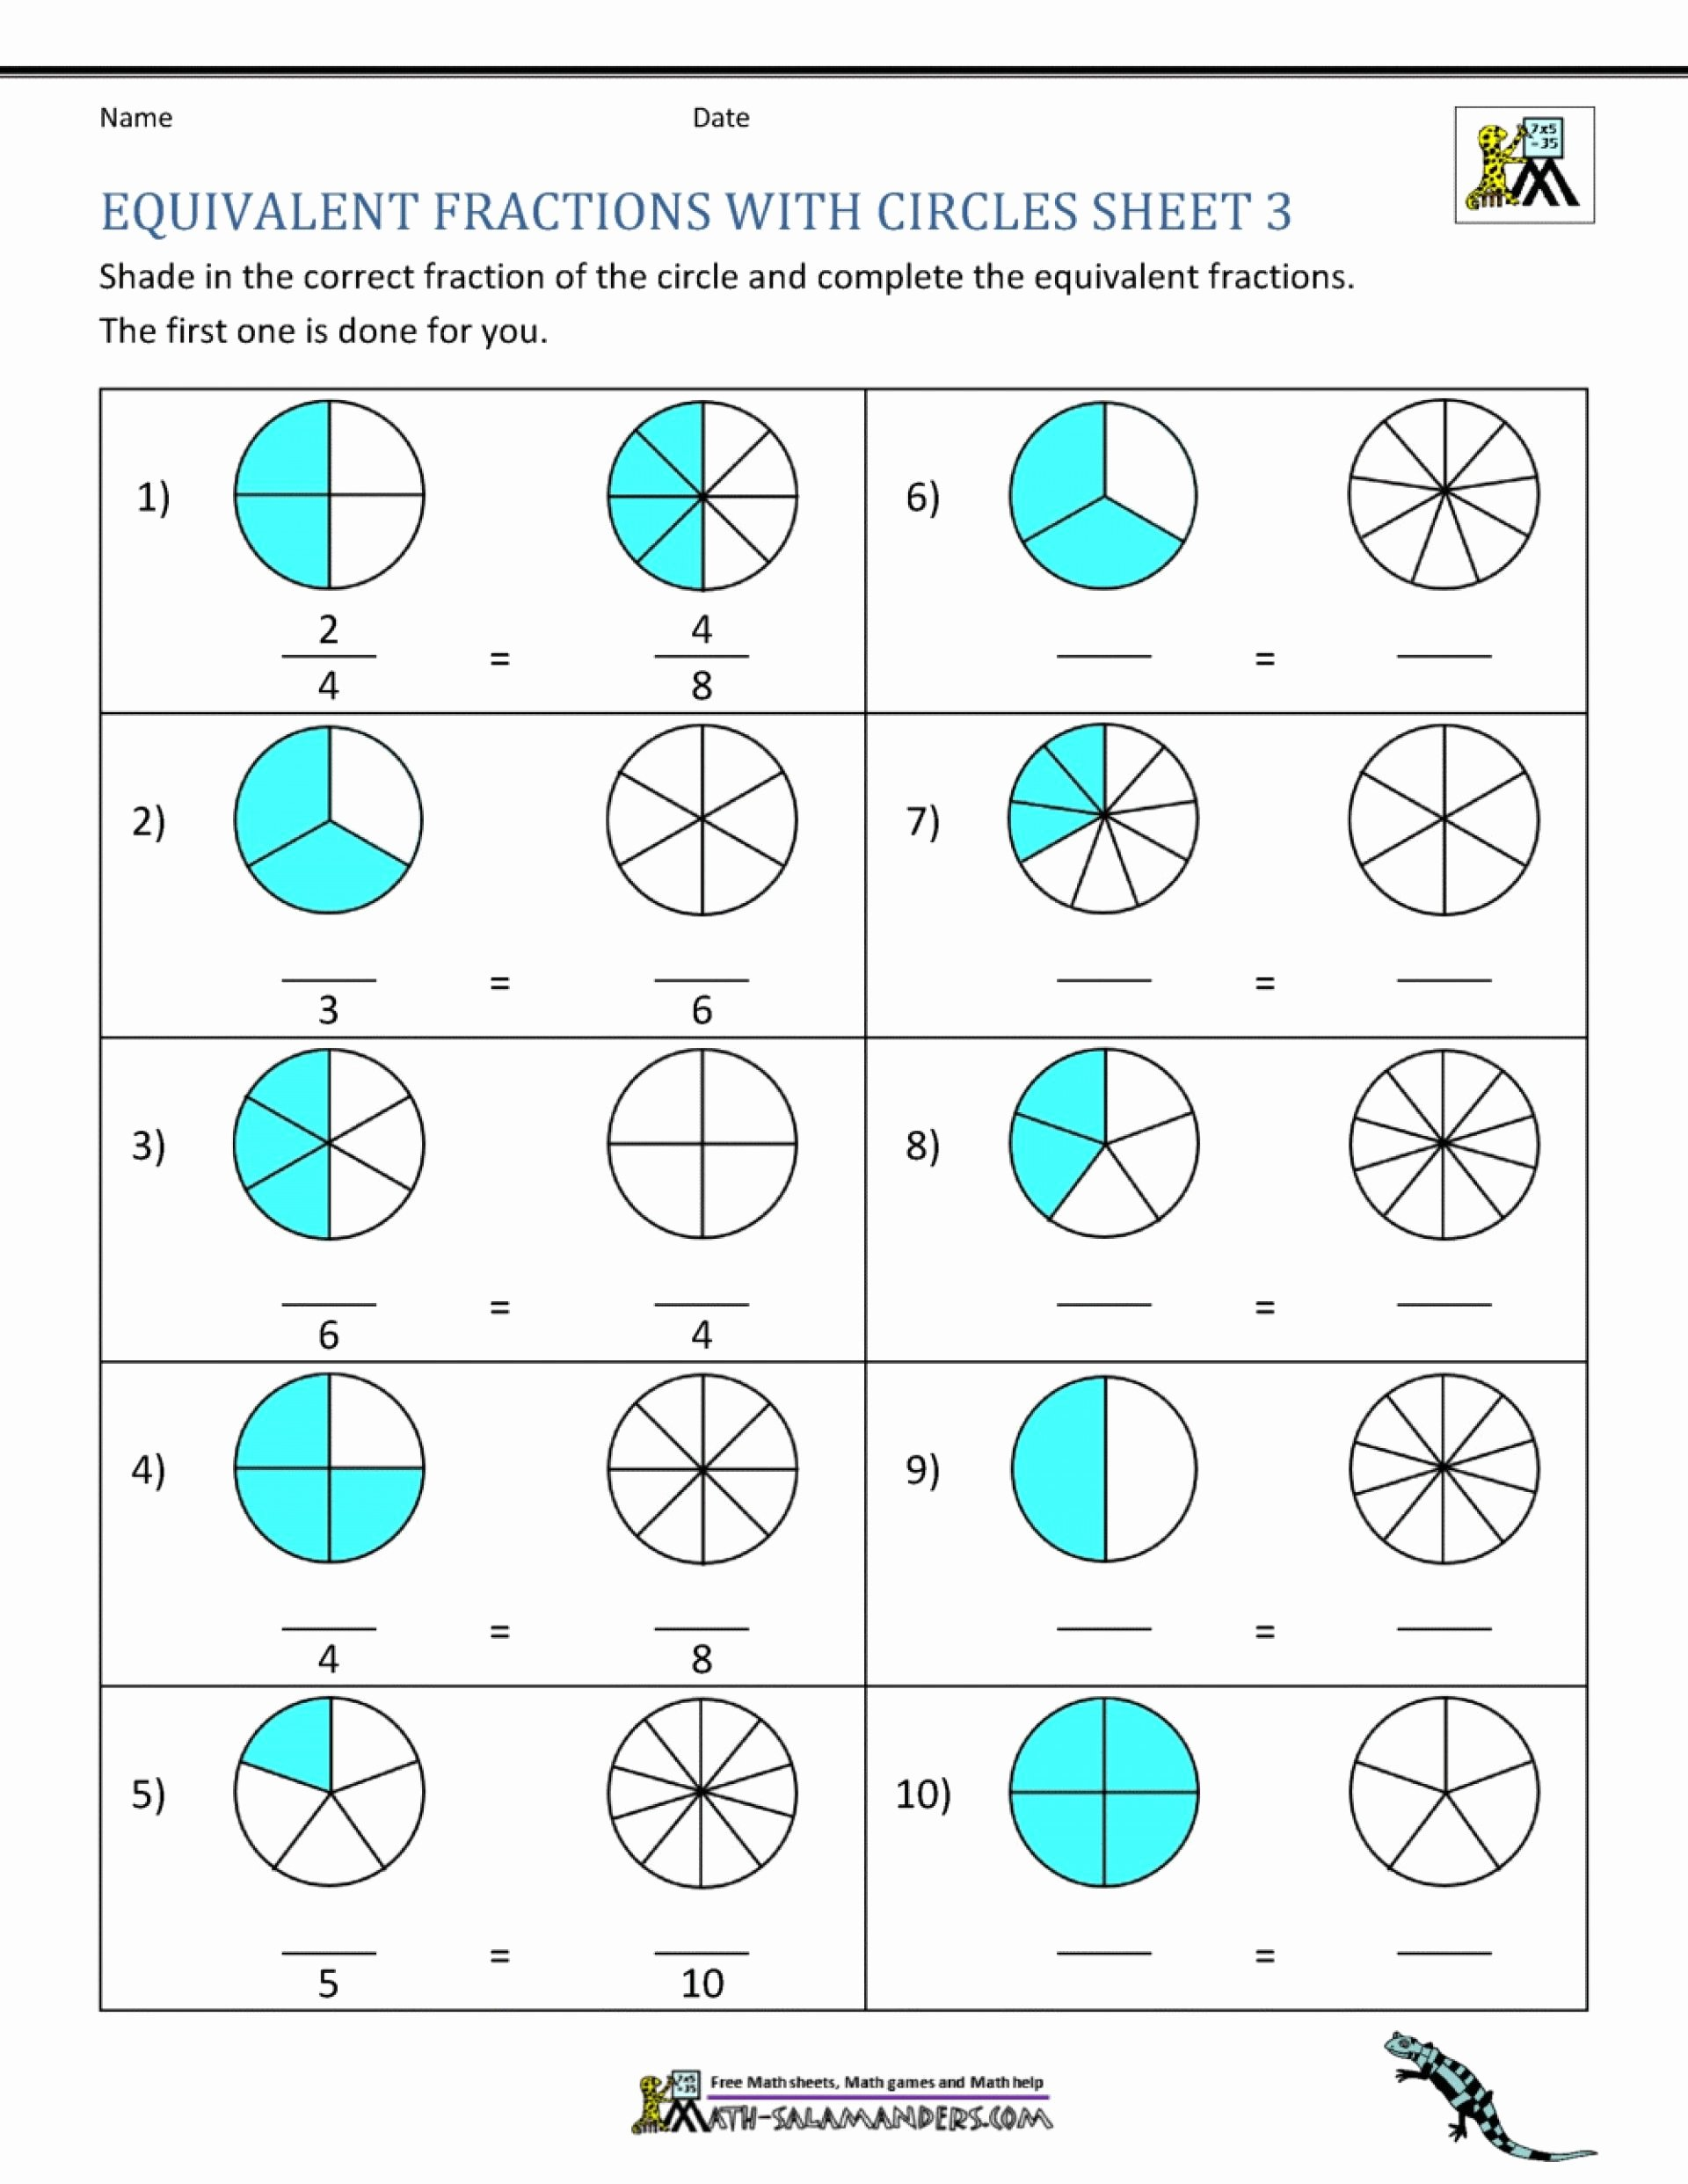 Prime Factorization Worksheet 6th Grade Free Free Math Worksheets Third Grade Fractions and Decimals